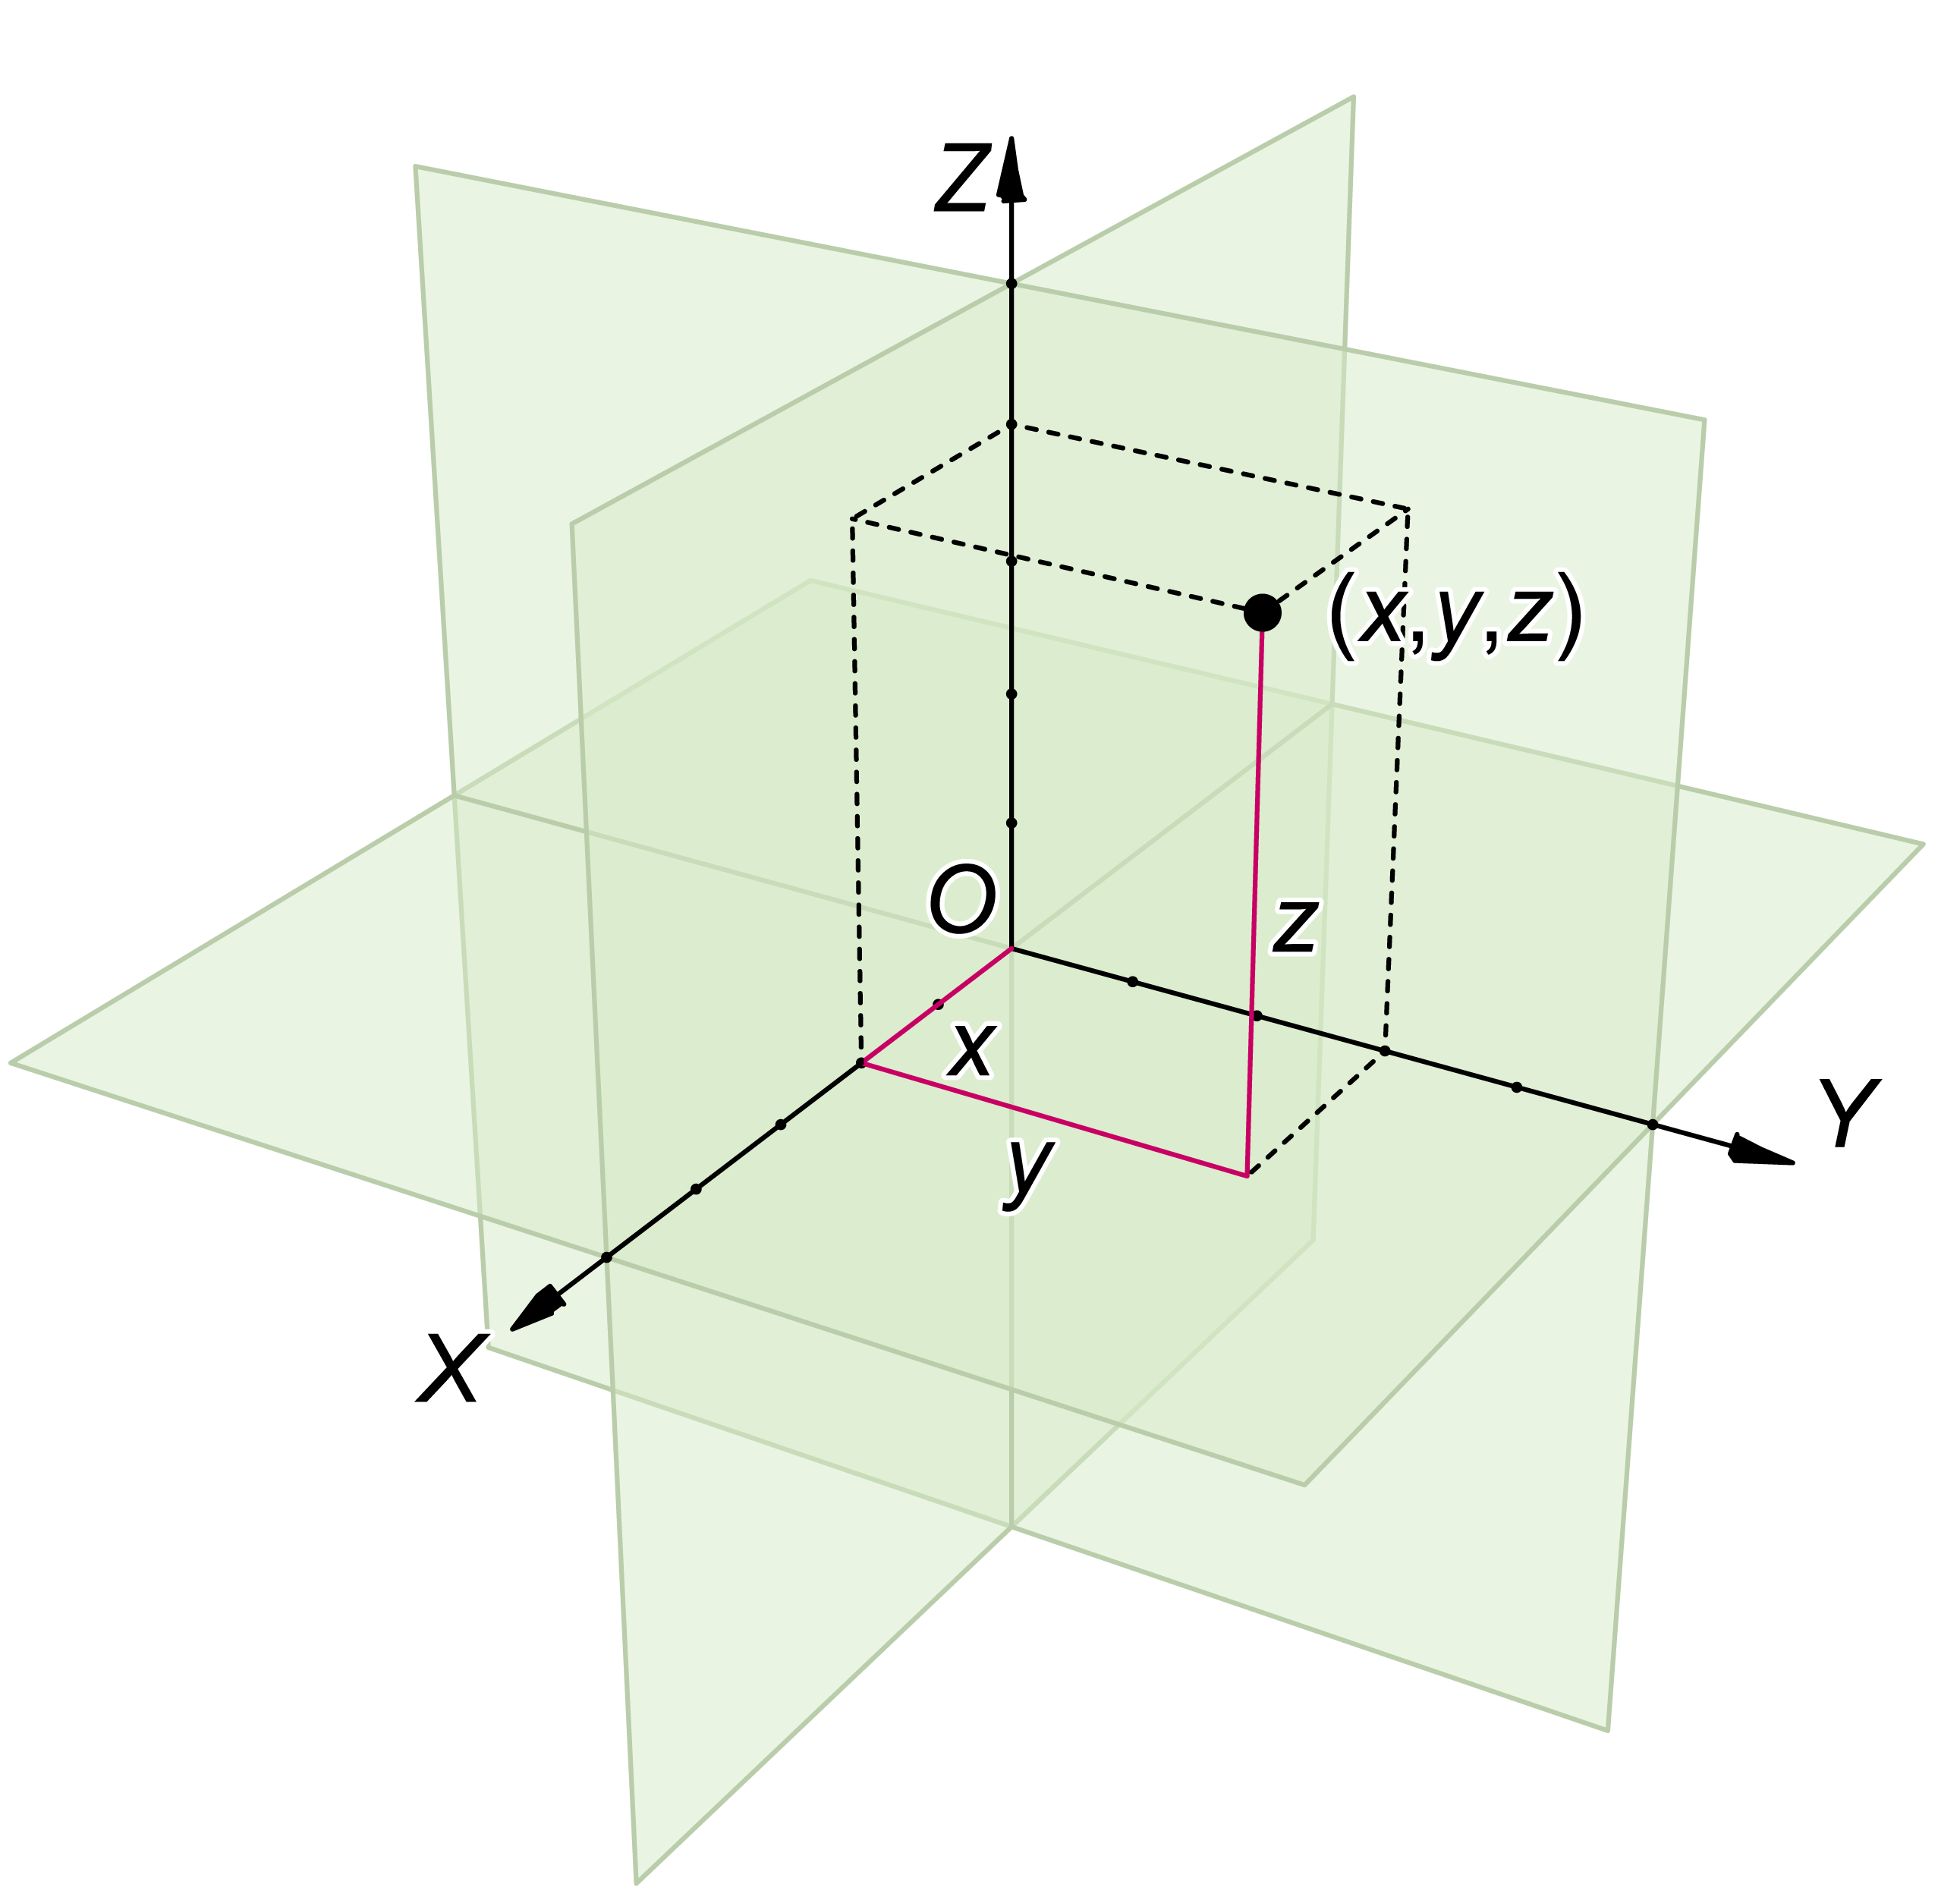 Example of a box in 3-D space